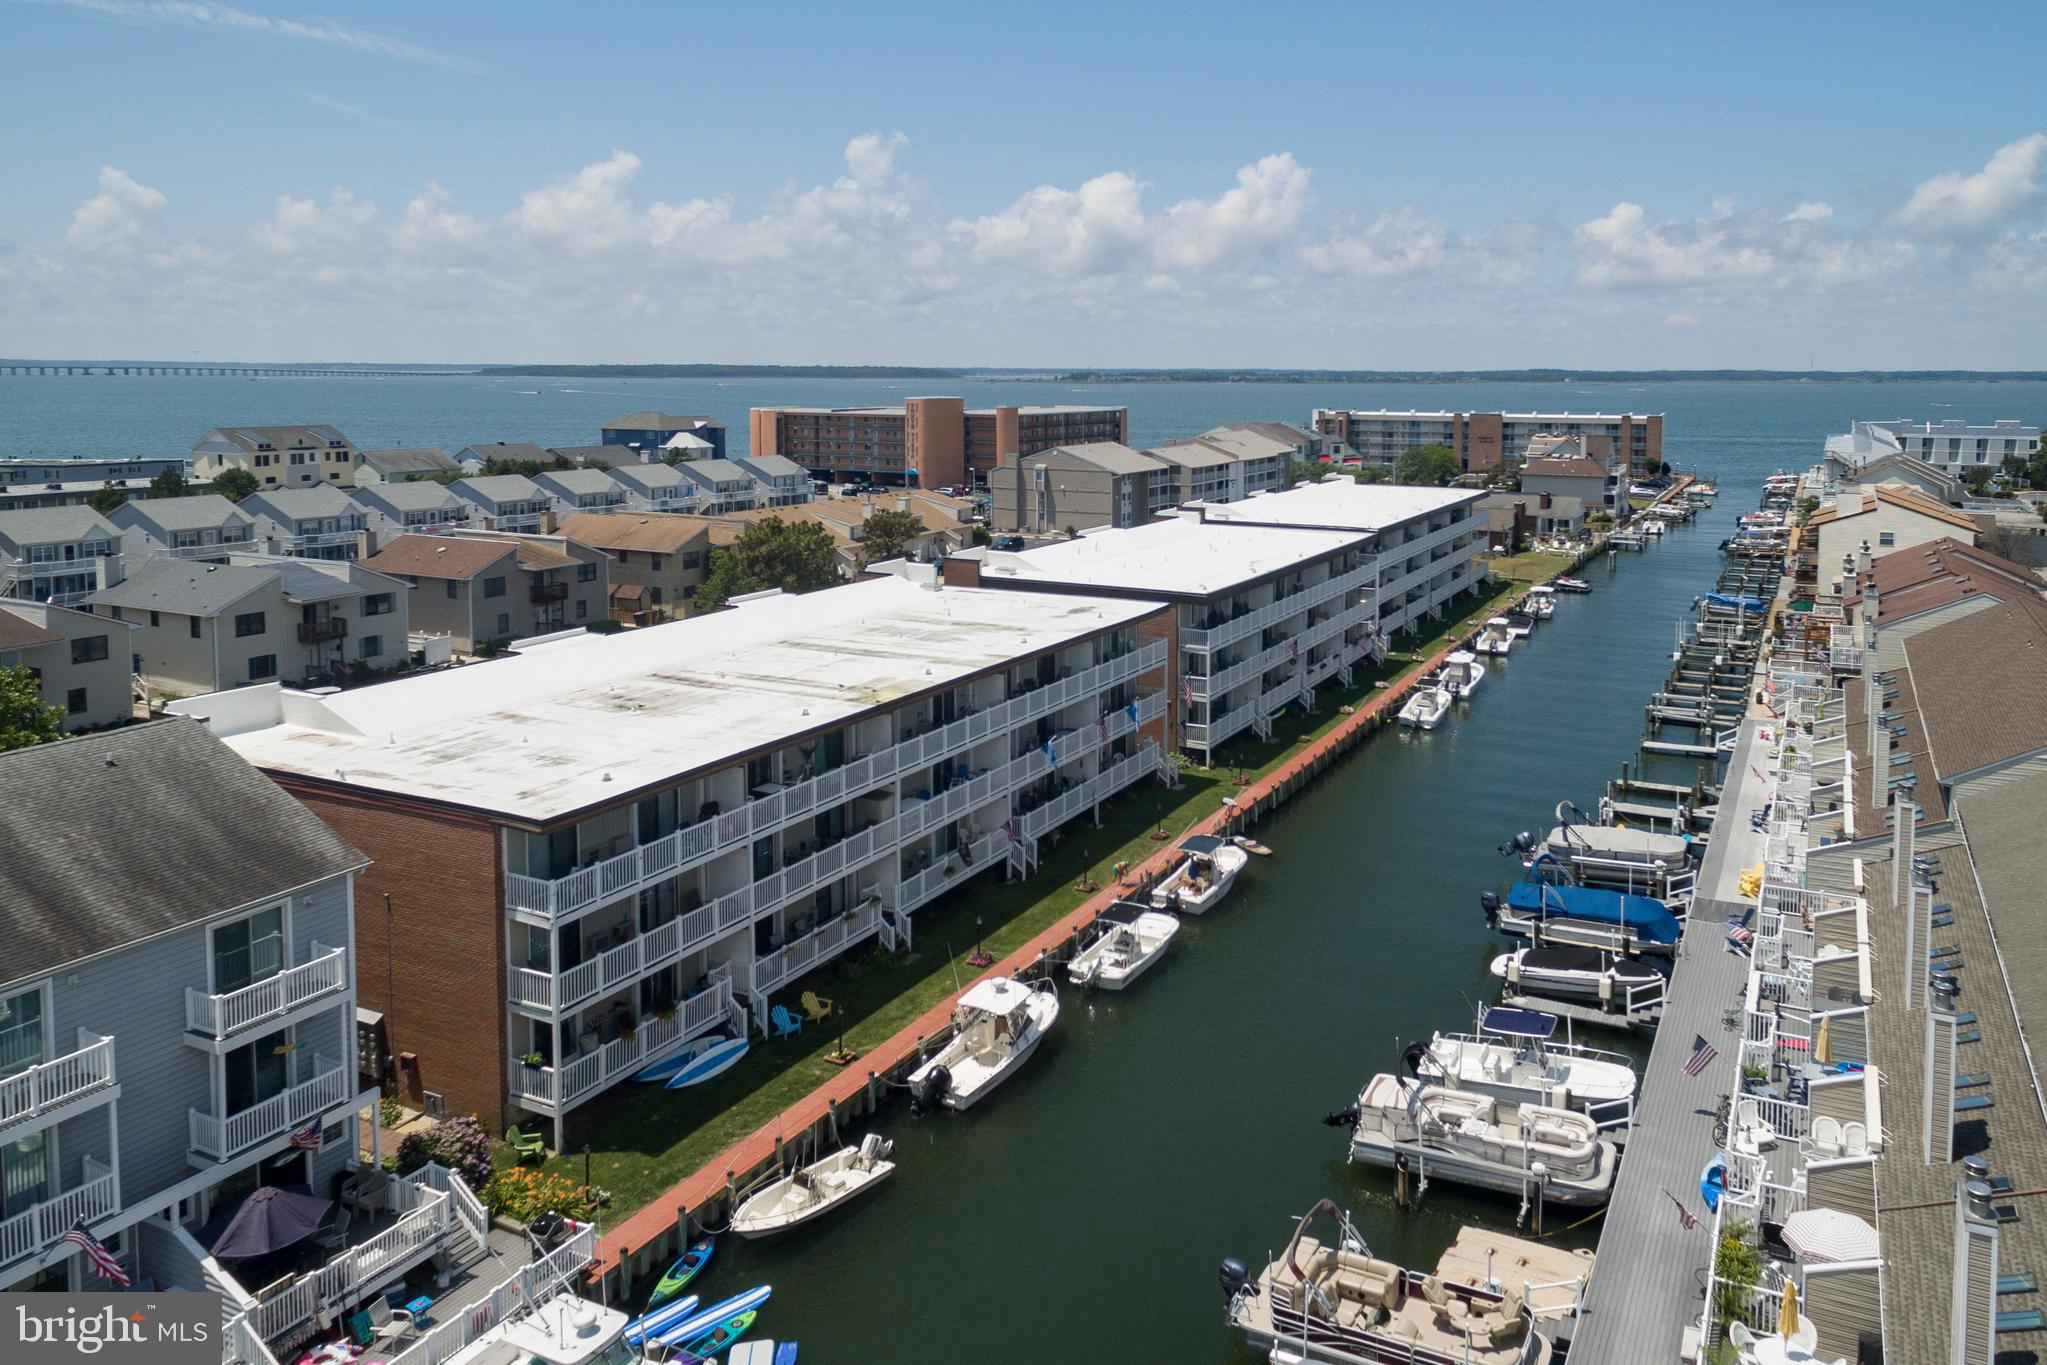 You've found it - Your magnificent new waterfront beach condo! This 2 bed/2 bath top floor unit shows great with new vinyl plank flooring, a new wet bar, updated bathrooms with new tile and more. It's ready to move right in! Just picture yourself sitting on your balcony, watching sunsets and boats. Or seasonally rent a slip from condo association for $150 (based on availability) and take your boat out and enjoy! Private exterior storage closet. One reserved parking spot and visitor spots available.  Professionally managed condo association. Exterior building updates include new roof, canal bulkhead (2019), parking lot (2018), vinyl siding (2017), vinyl railings (2015). Chateau Phoenix complex is located of popular 94th Street community, close to plenty of restaurants, shopping, entertainment and grocery. Owner used as family residence, but would also be a great vacation or rental. Call for your private tour today!